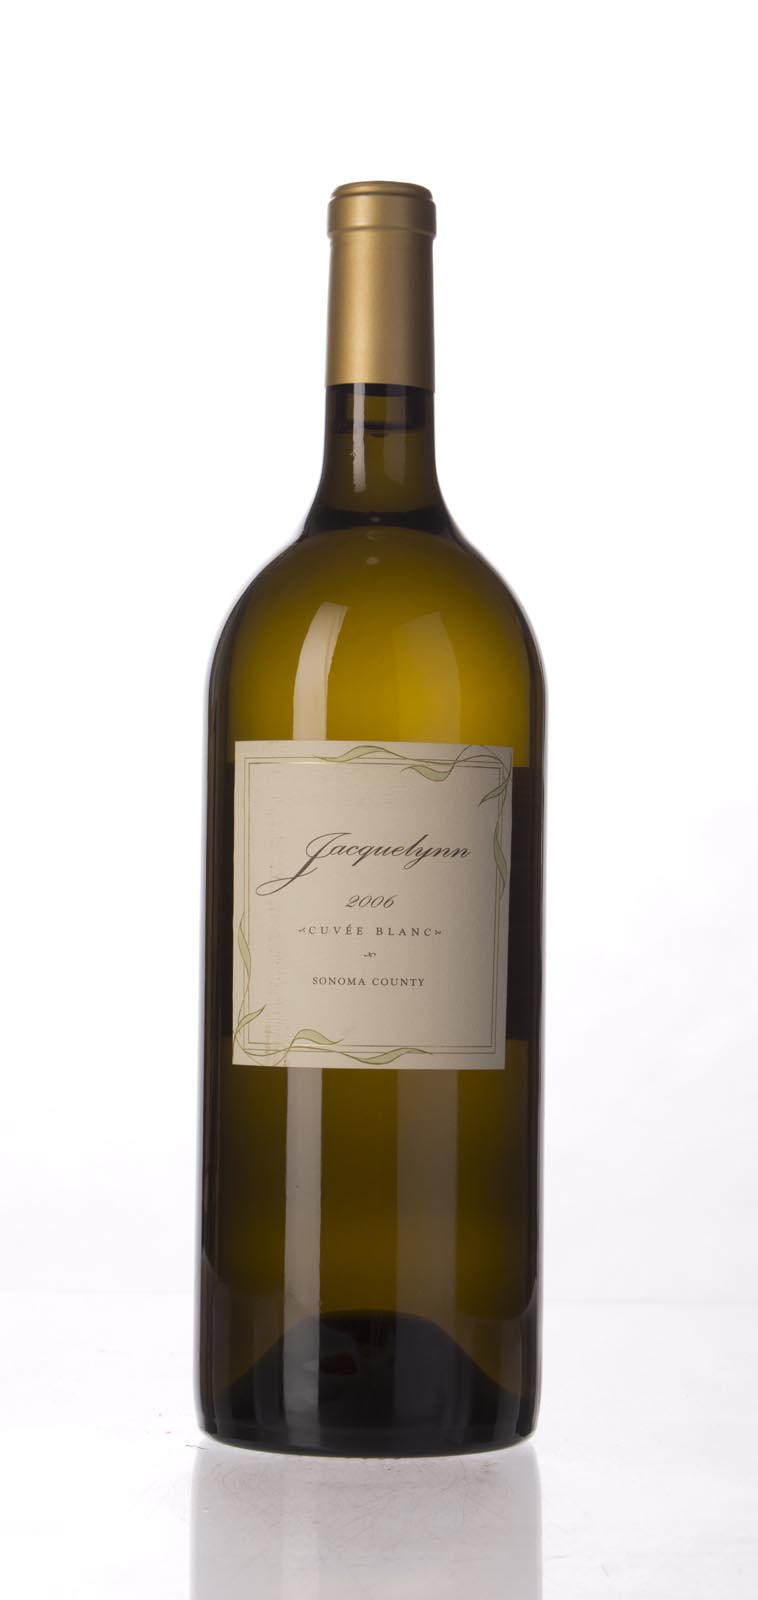 Jacquelynne Proprietary White Cuvee Blanc 2006, 1.5L () from The BPW - Merchants of rare and fine wines.